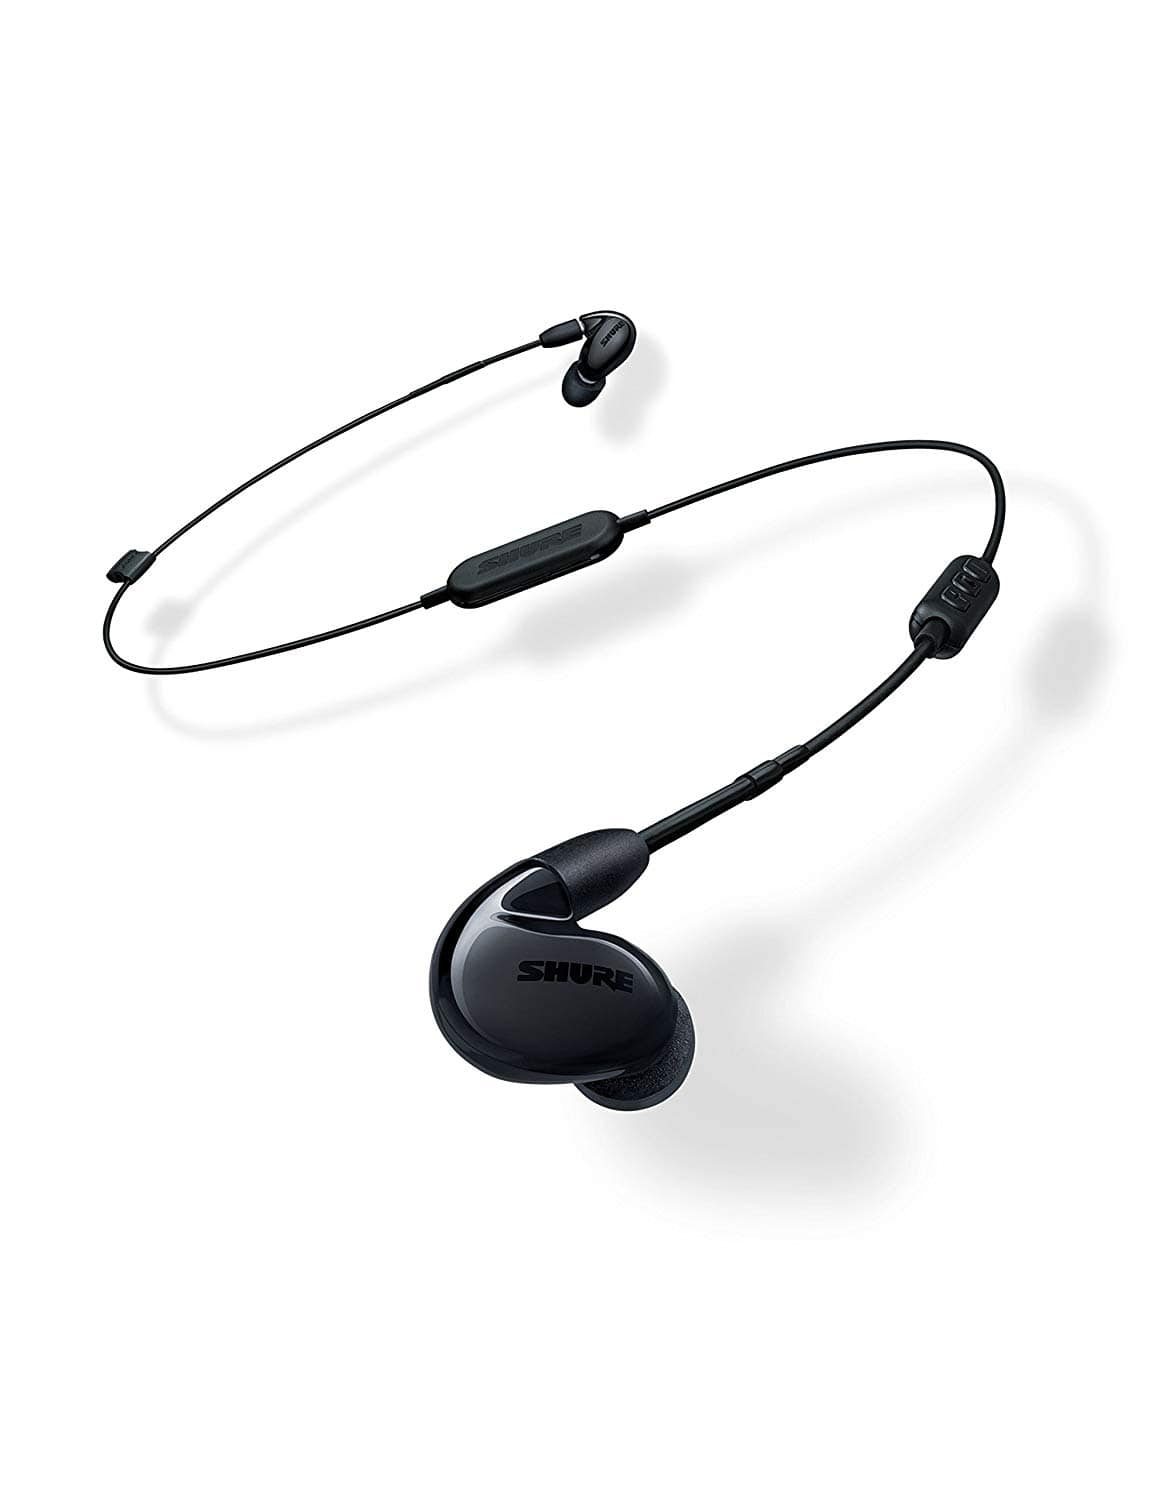 Shure SE846 Earphones +BT1 (All Colors) Wireless $629.99